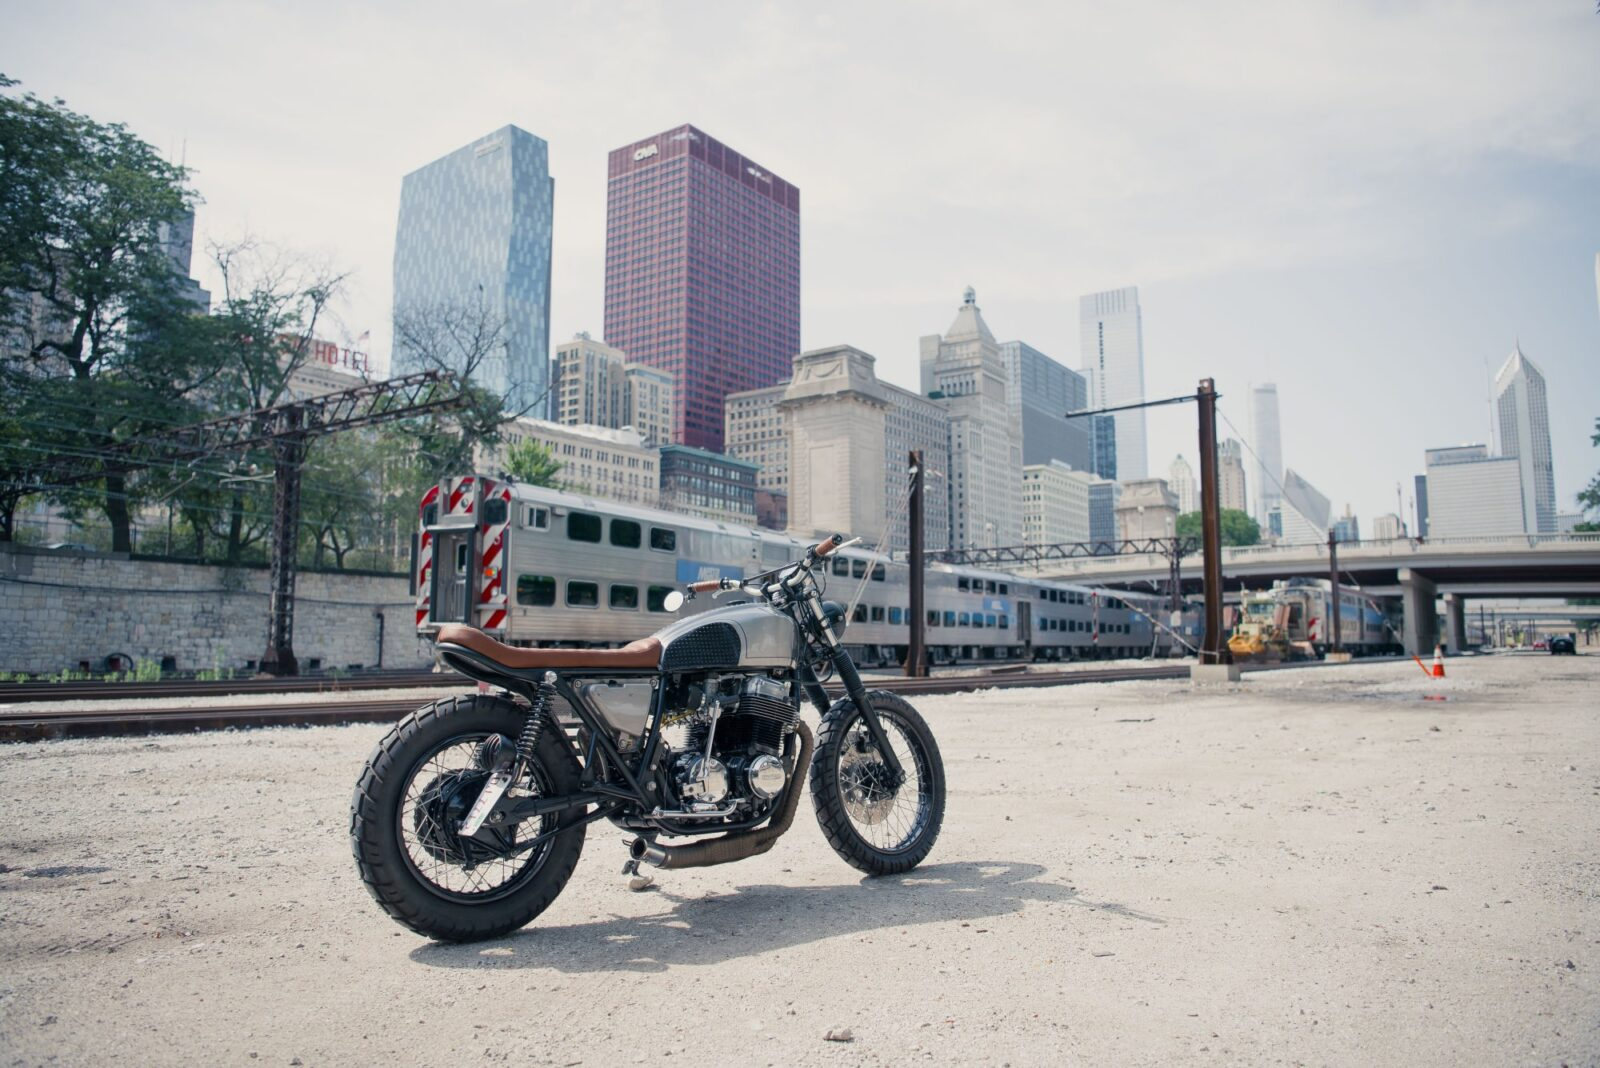 Honda CB 750 Motorcycle 19 1600x1068 - Hold Fast Chicago Honda CB750